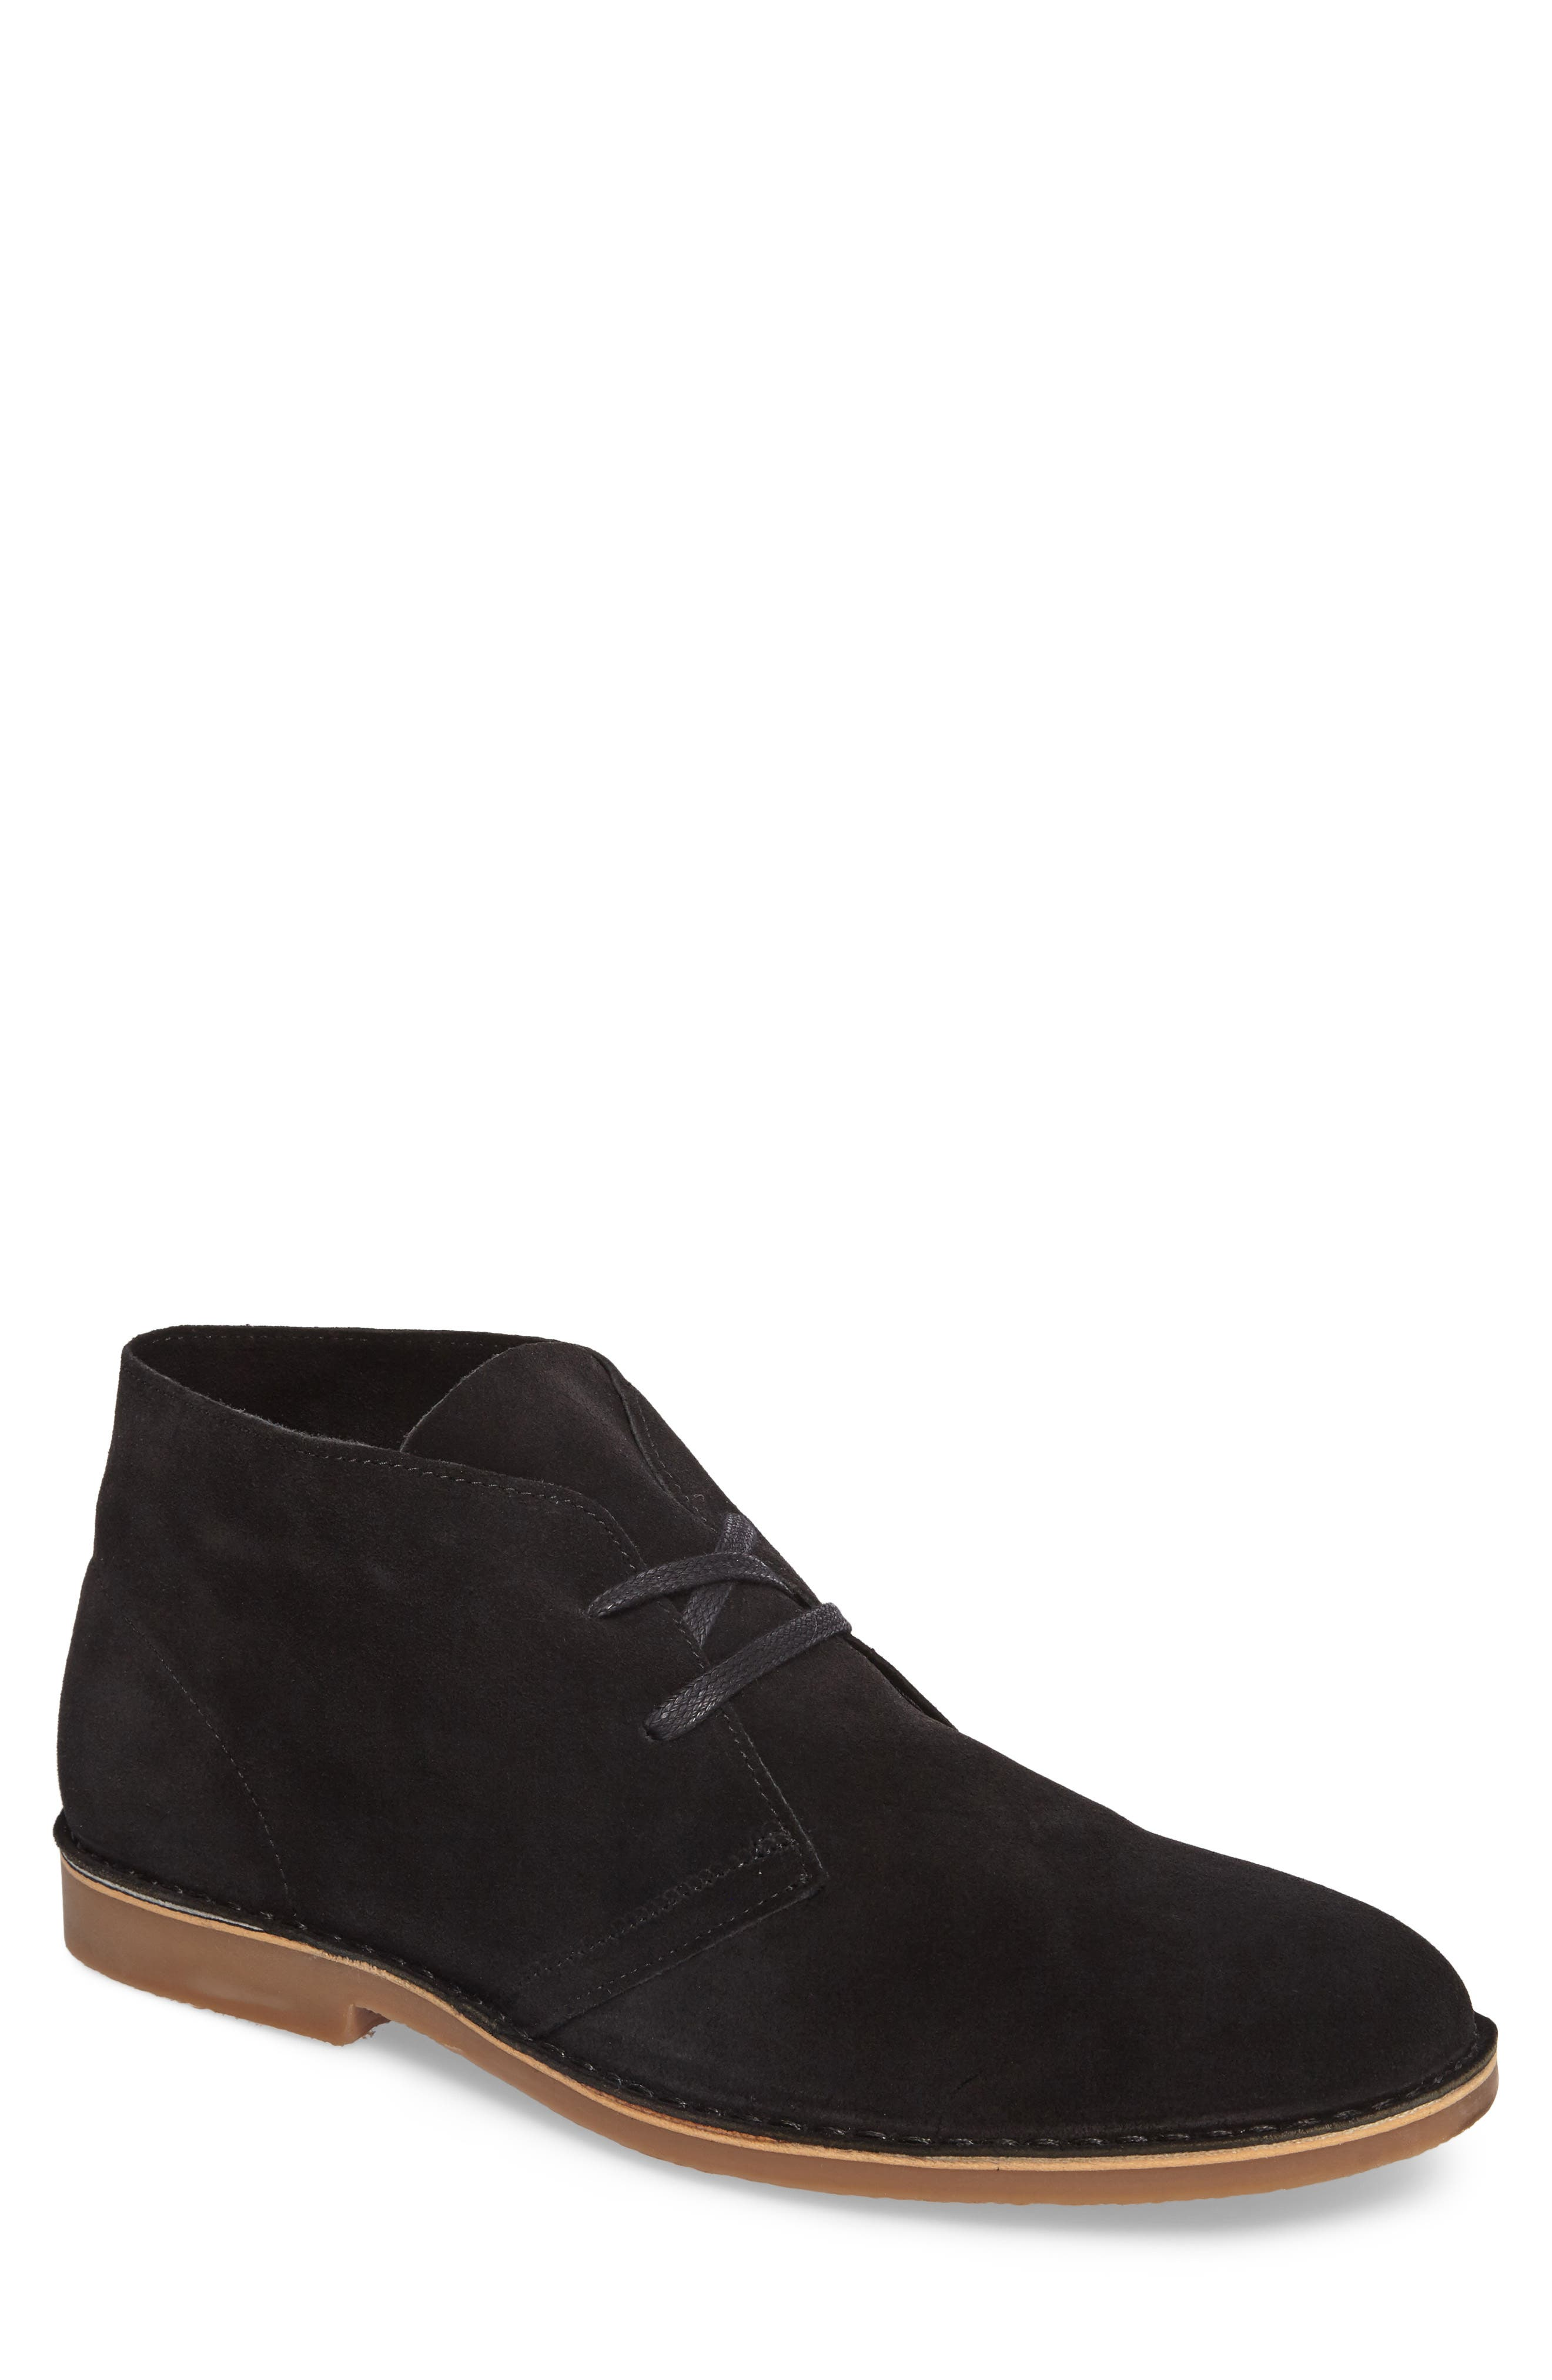 SUPPLY LAB Beau Chukka Boot in Black Suede